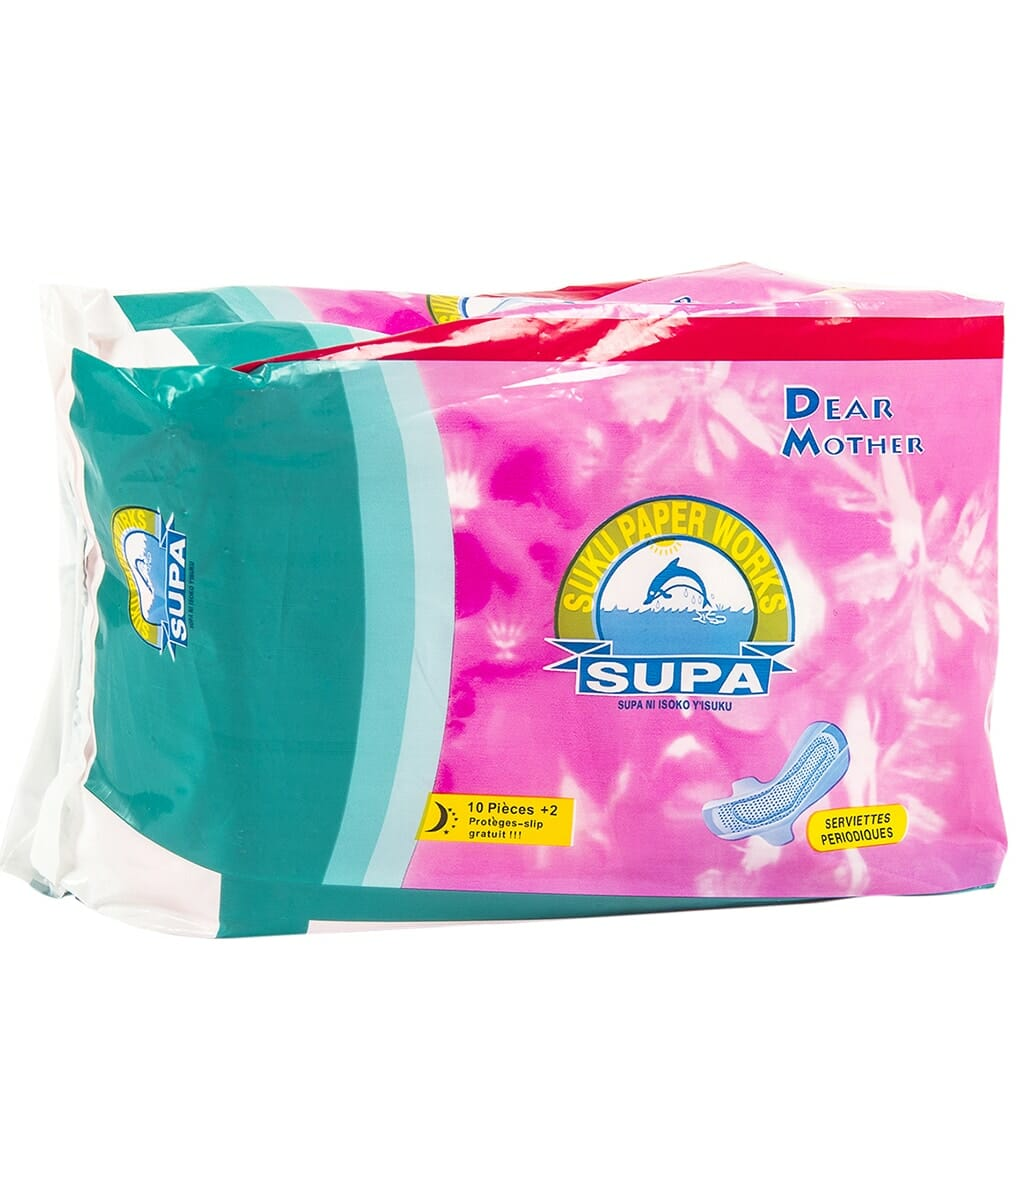 Supa Sanitary Pads 10Pieces